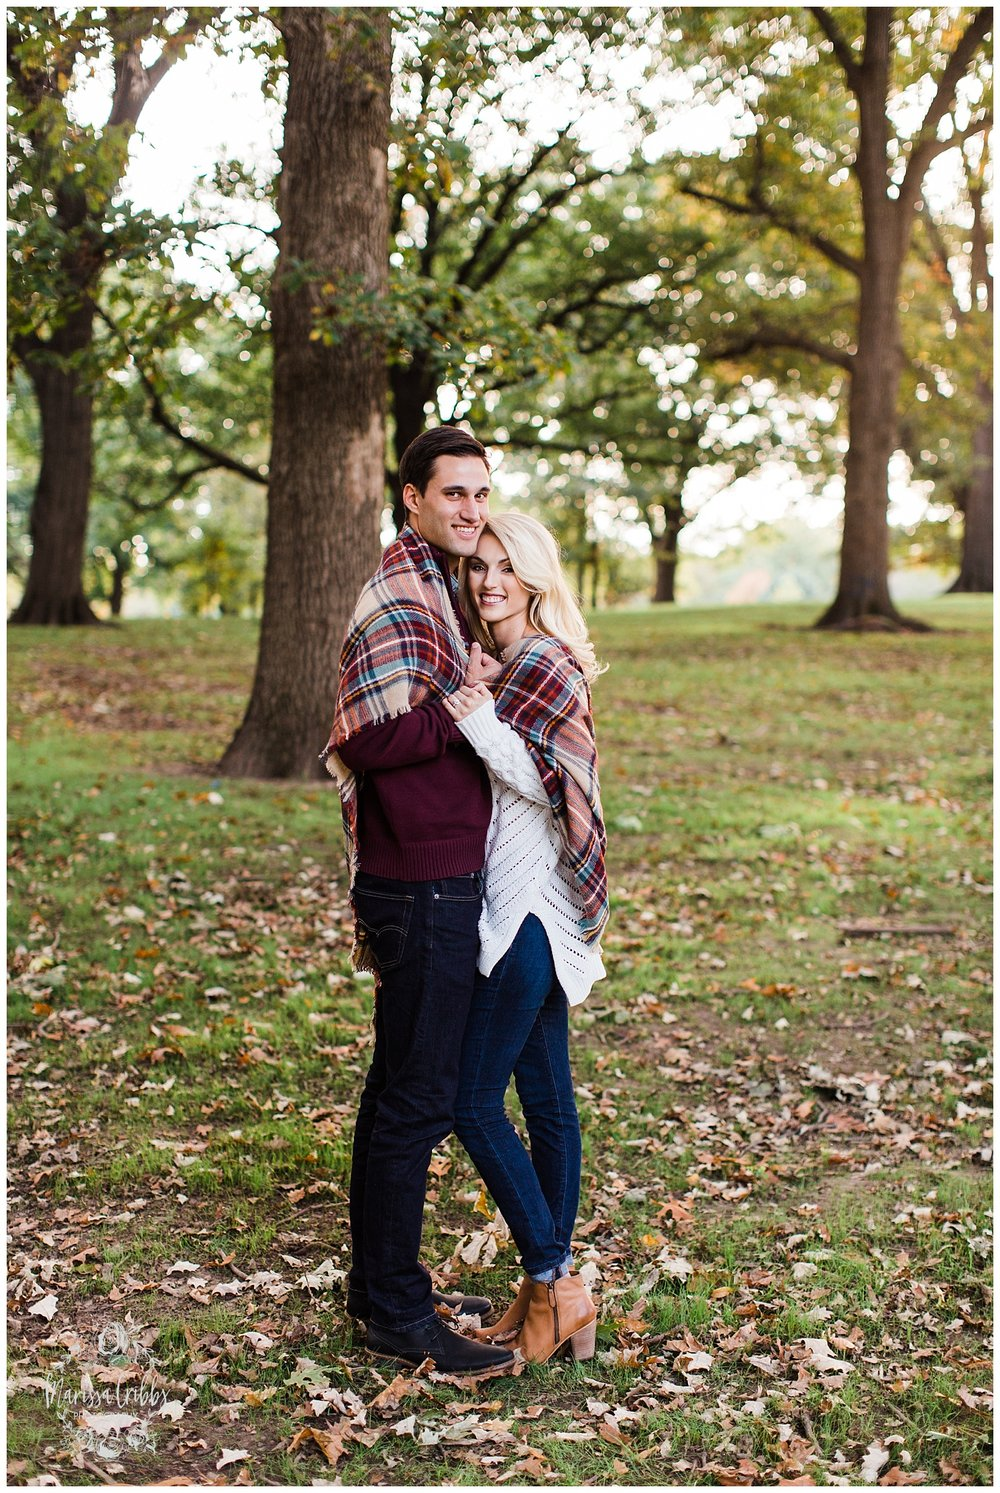 CLOE & GABE LIBERTY MEMORIAL ENGAGEMENT | MARISSA CRIBBS PHOTOGRAPHY | LOOSE PARK ENGAGEMENT_3461.jpg